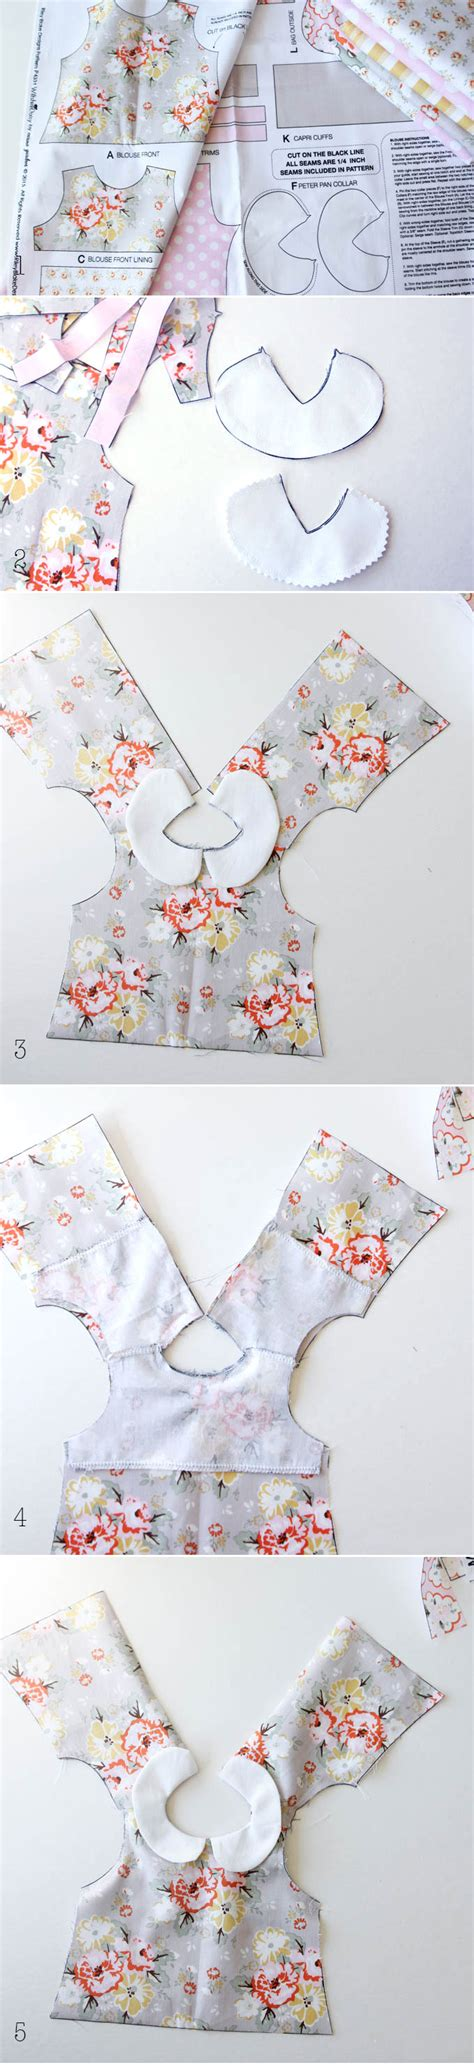 doll clothes pattern tutorial doll clothes panel tutorial doll clothes dolls and clothes